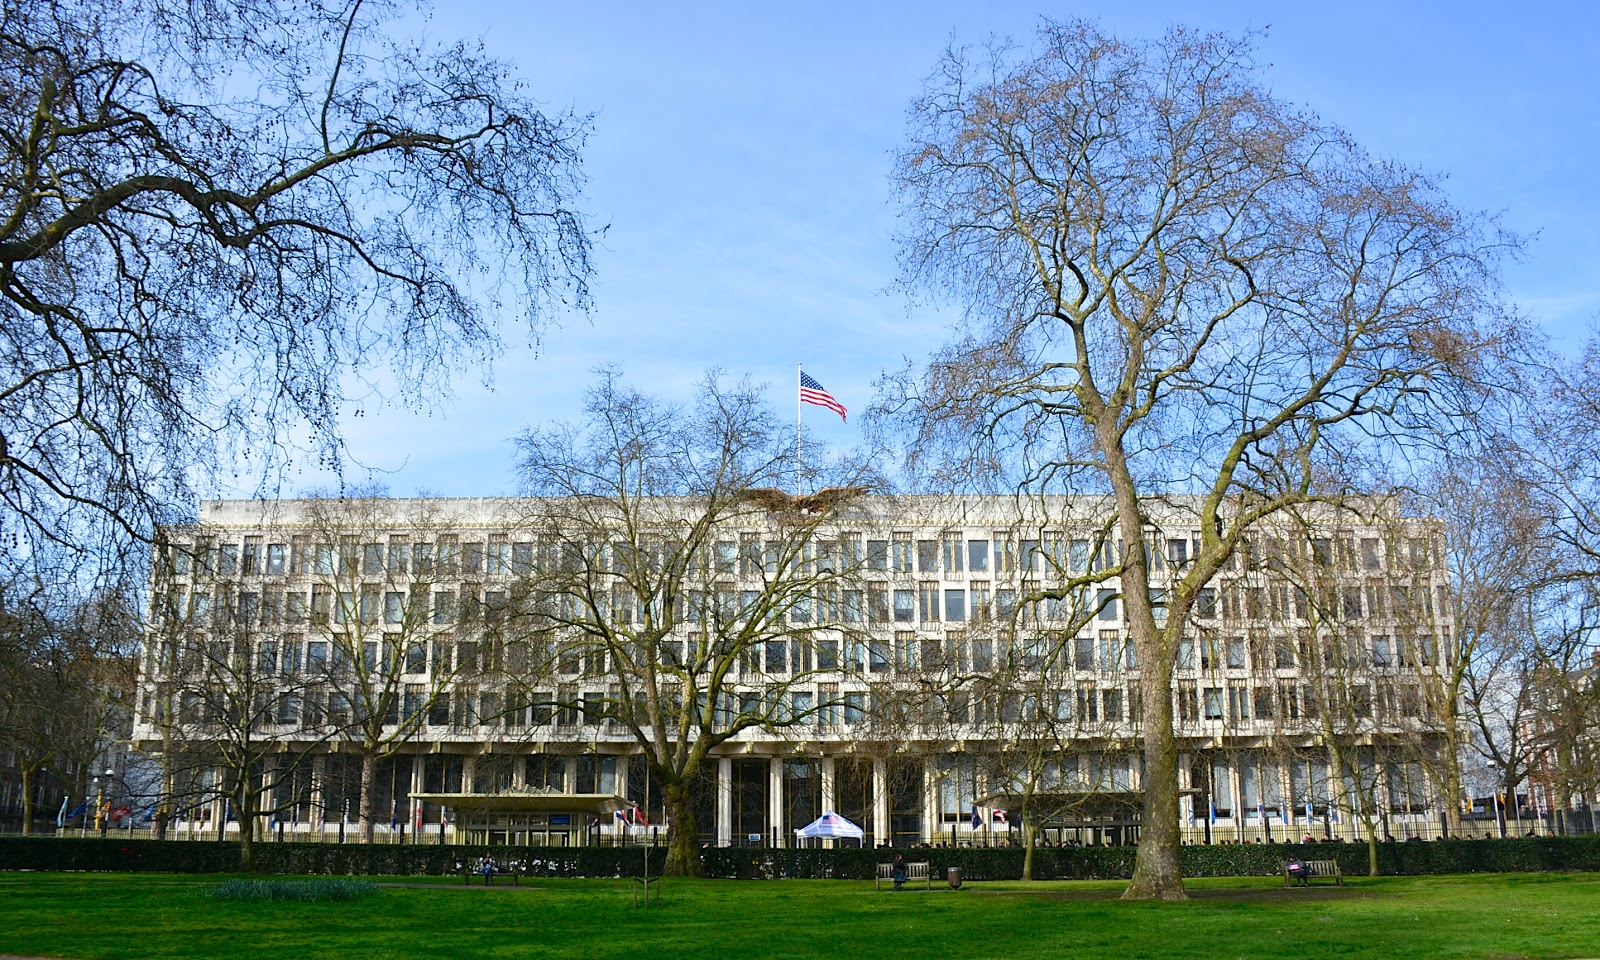 U.S. Embassy in London